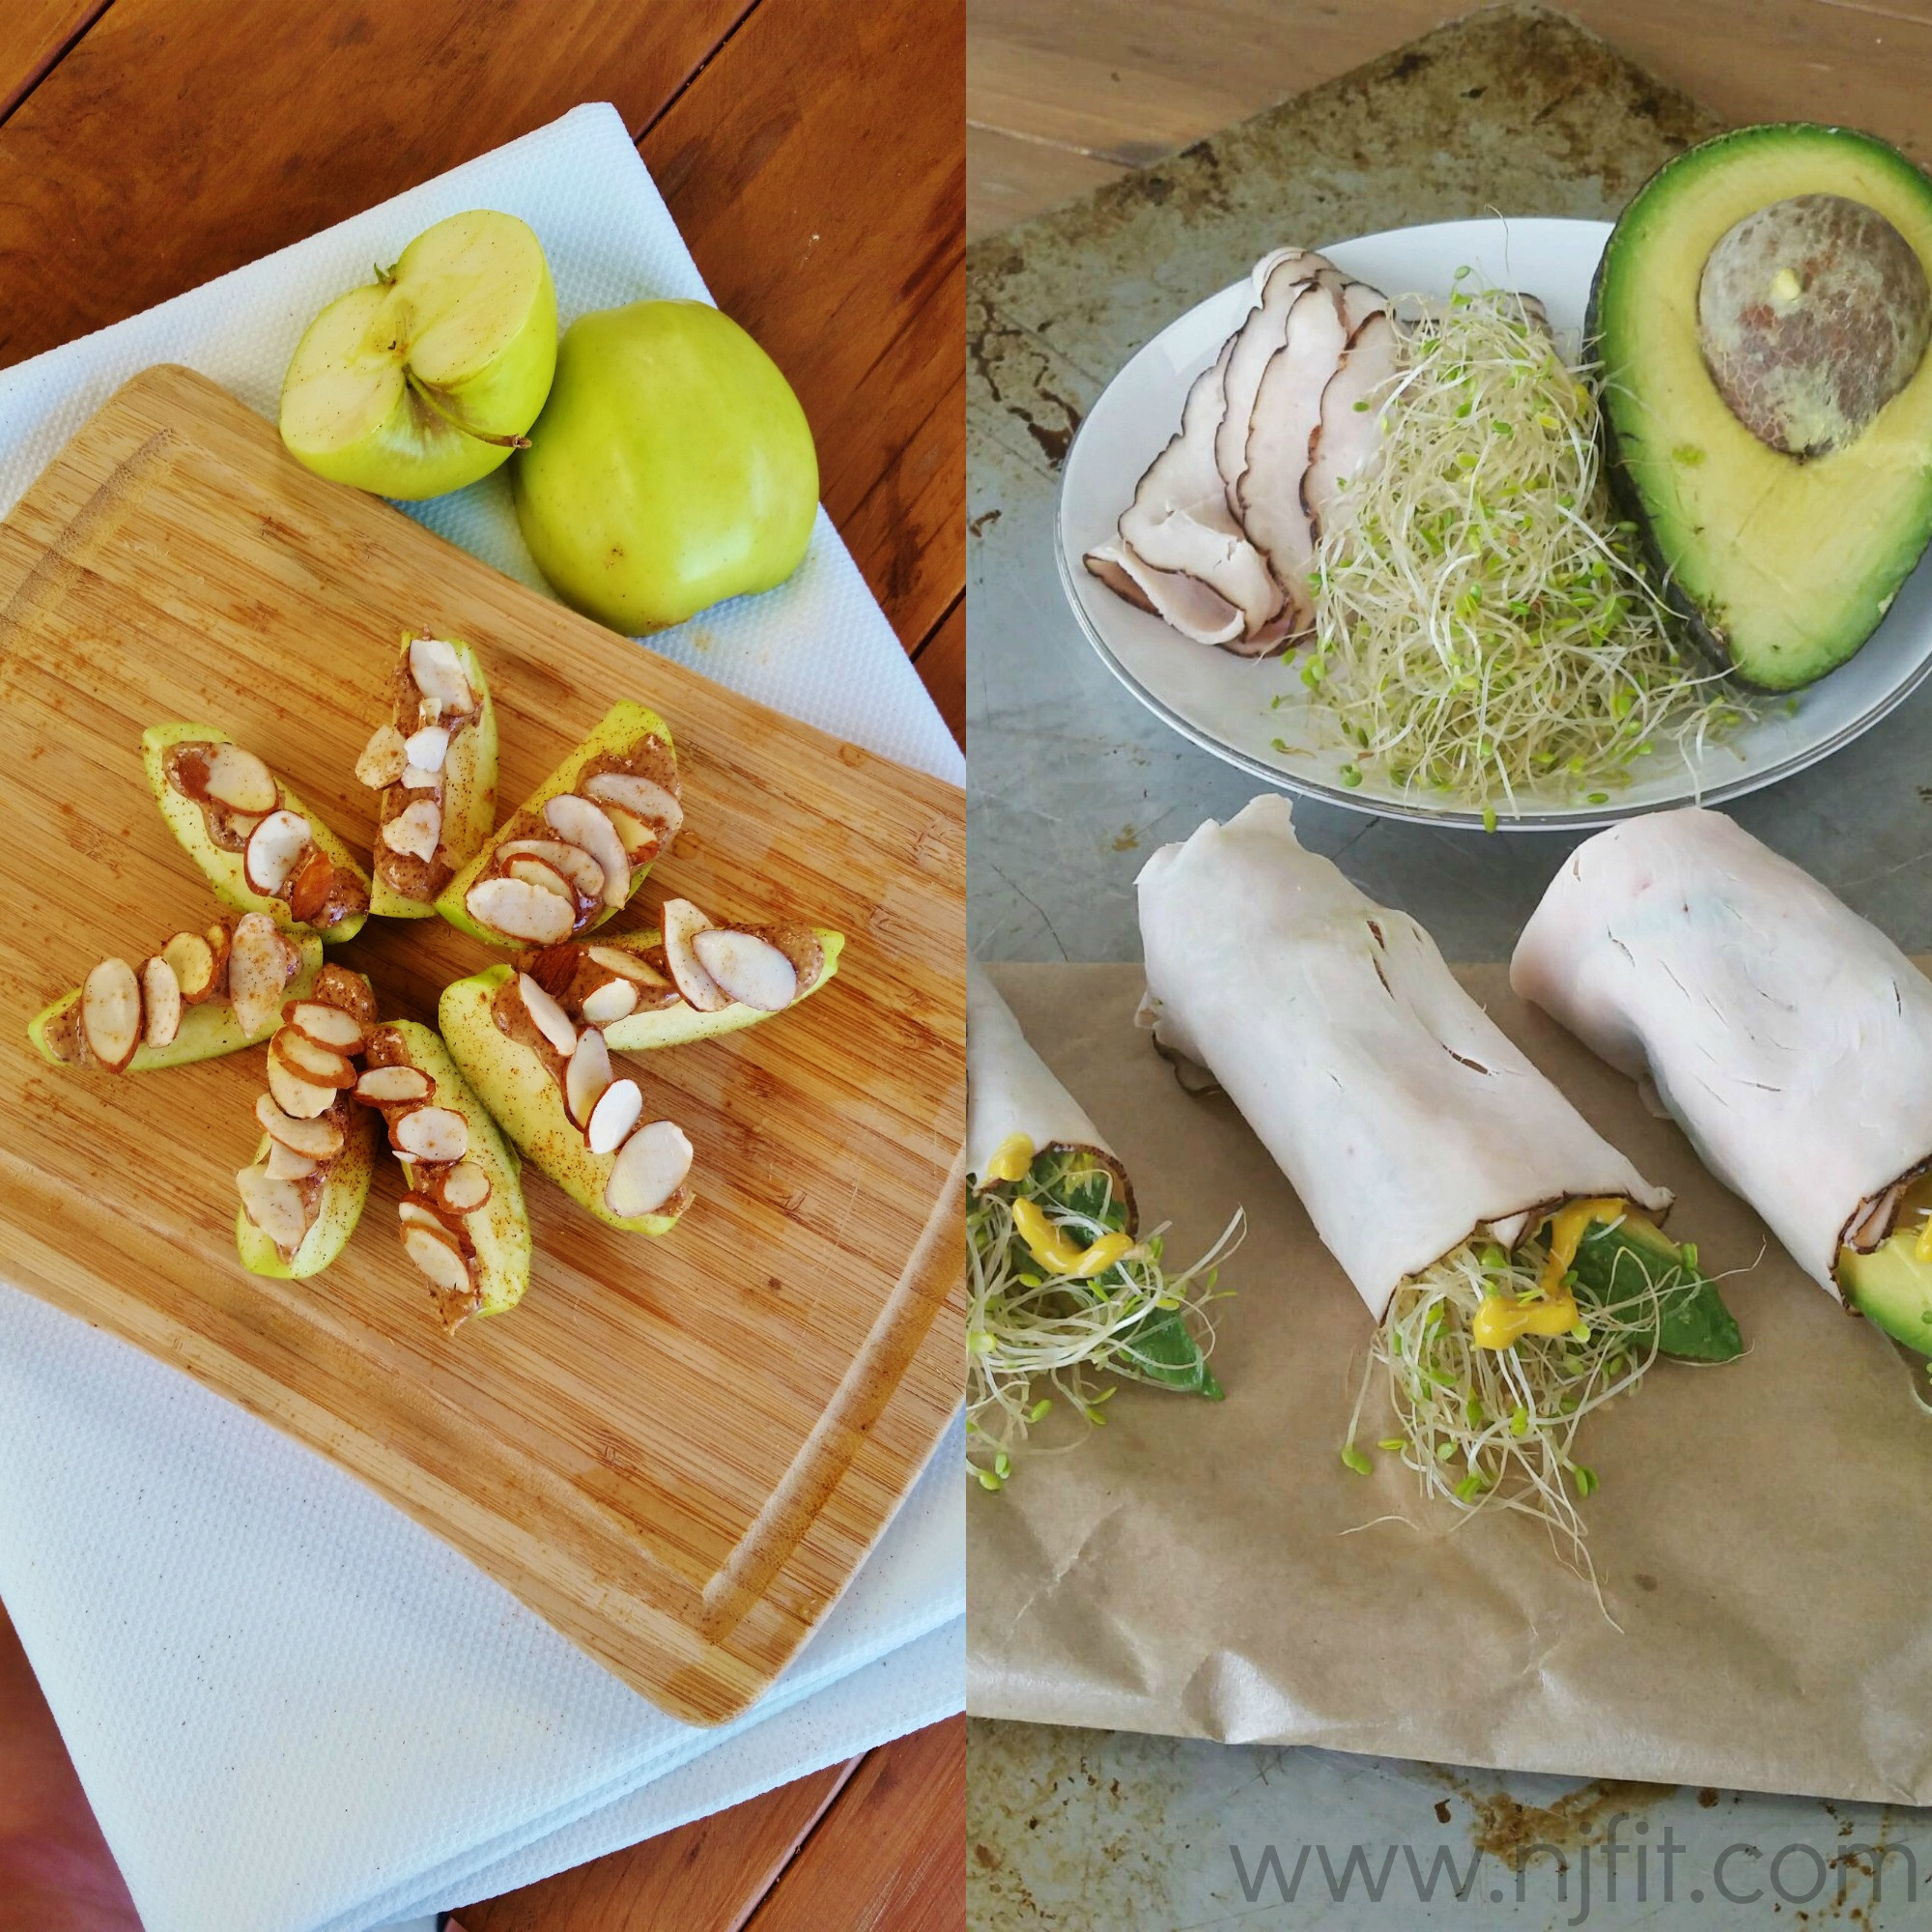 Healthy And Easy Snacks  Quick healthy snacks 2 Natalie Jill Fitness